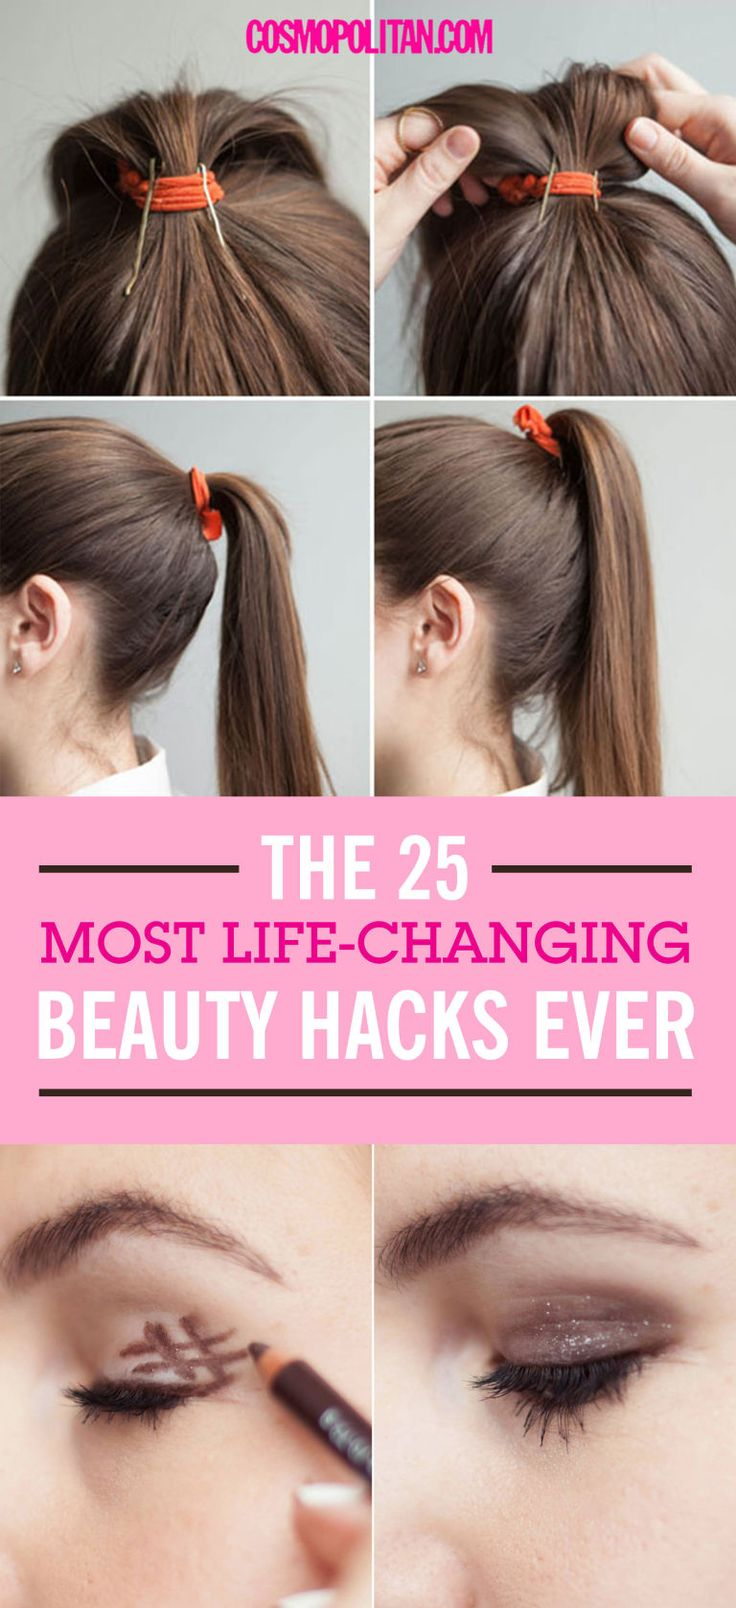 These 12 Awesome Health and Beauty Tips From Viral Posts